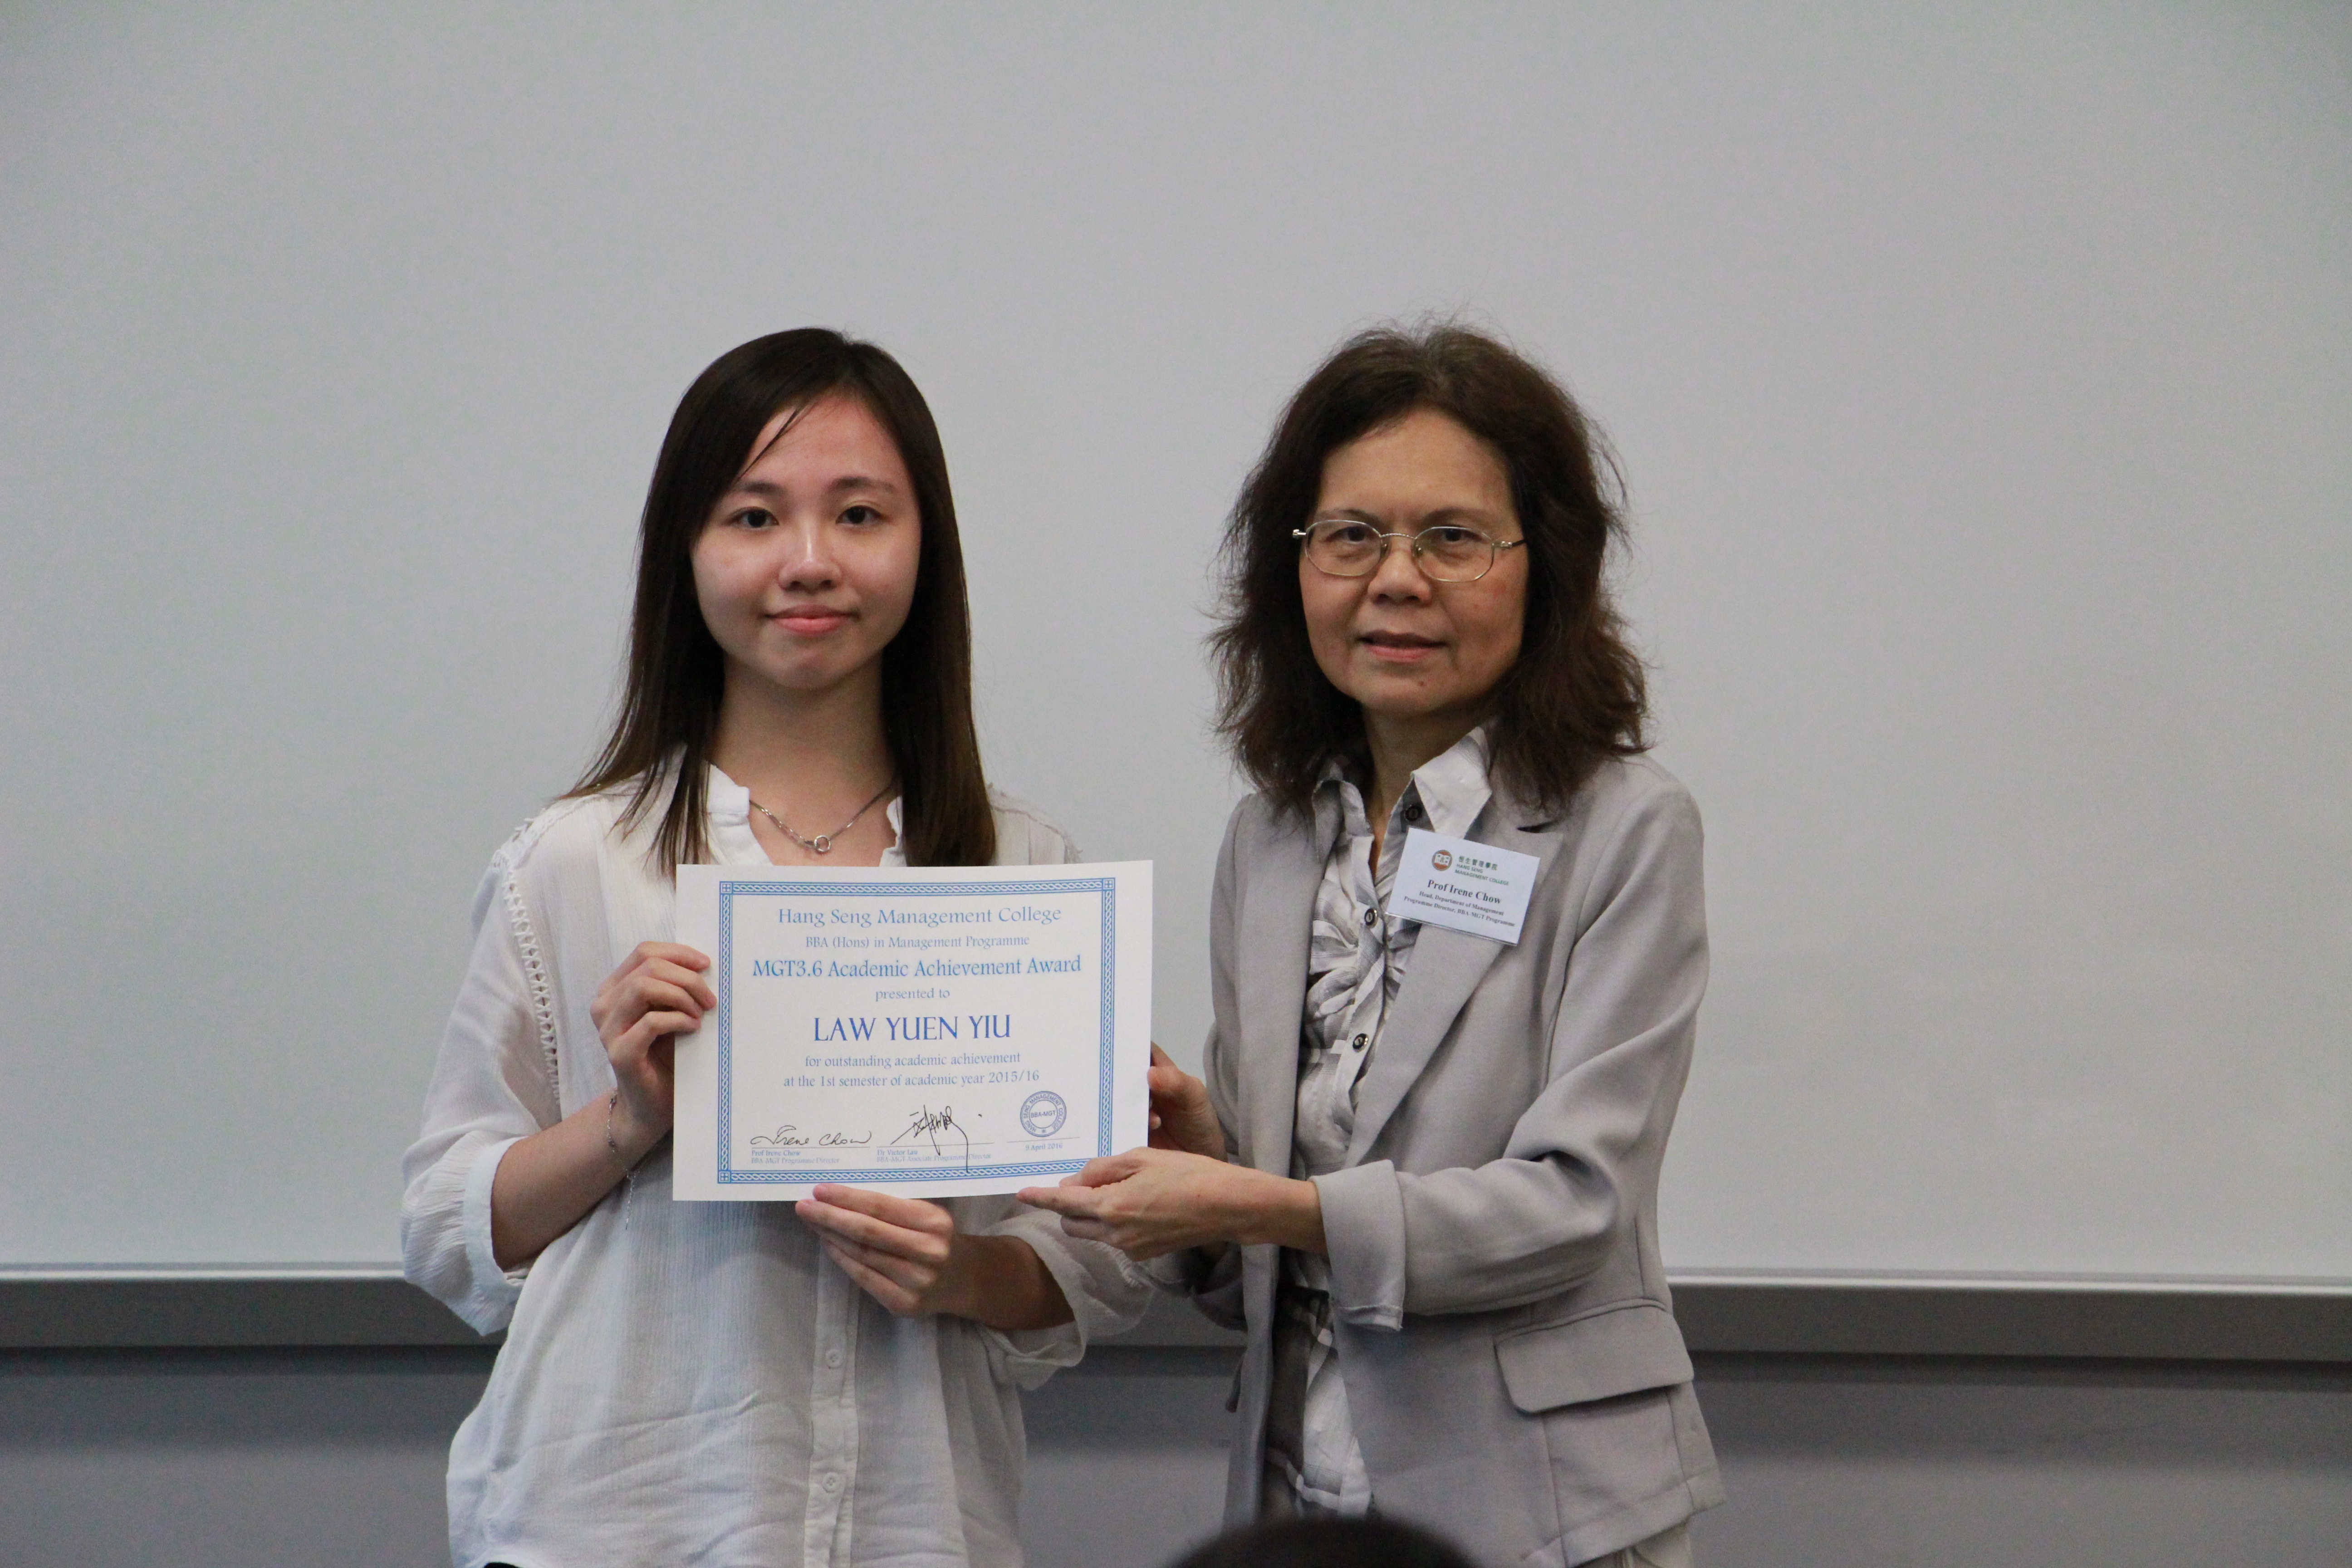 Prof. Chow presents the certificate to the student.